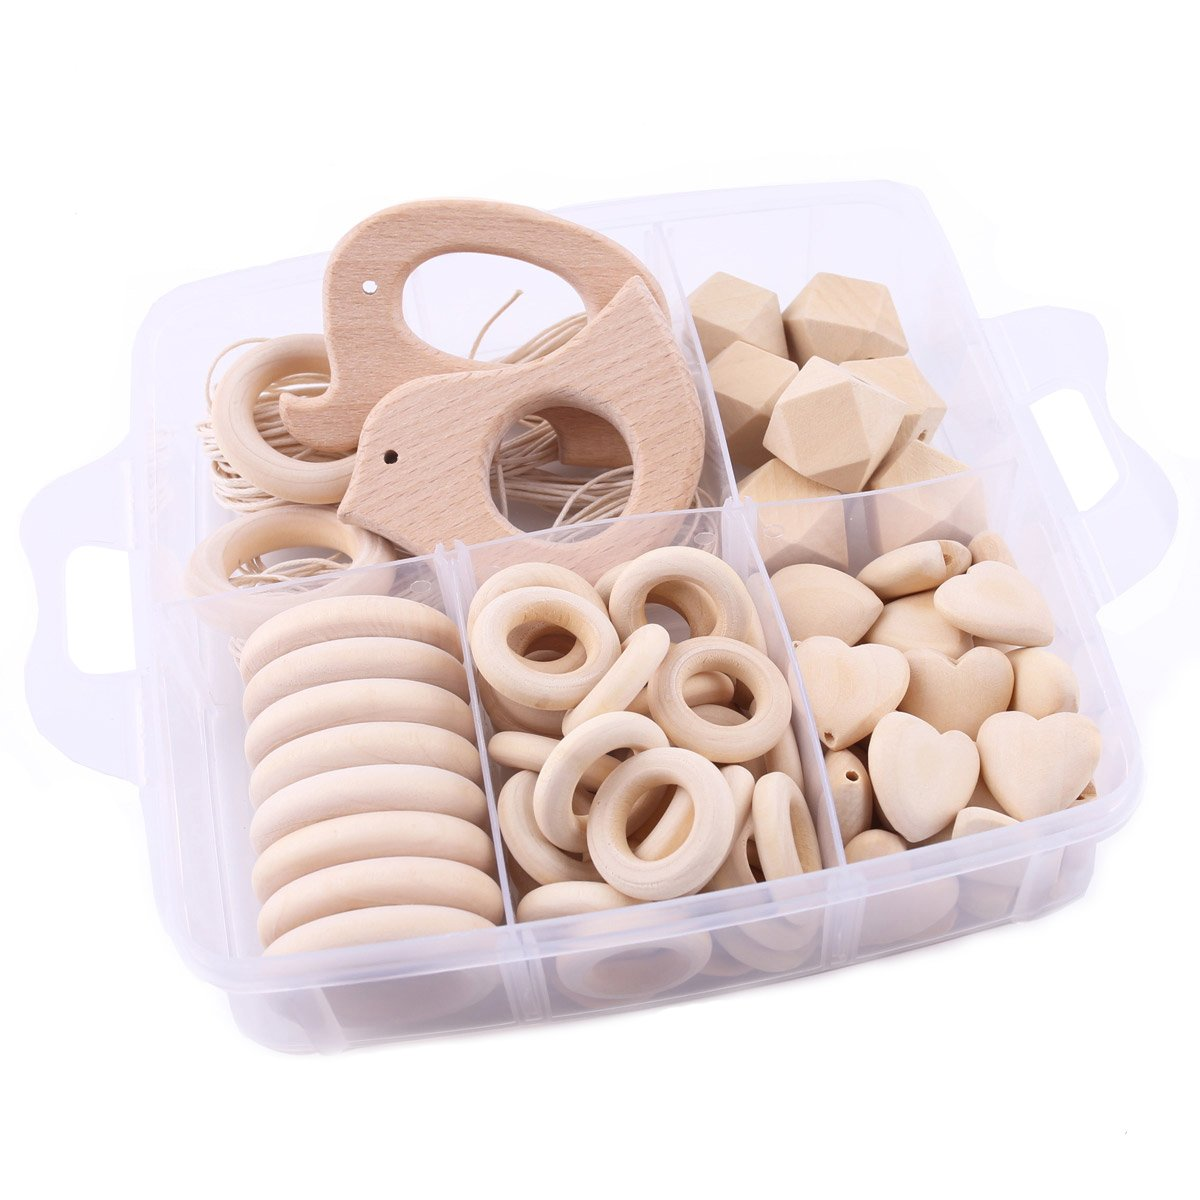 Baby love home Baby Teether Wooden Teething Unfinished Beads DIY Teething Necklace Kit Organic Teether Wood Charms Baby Shower Gift